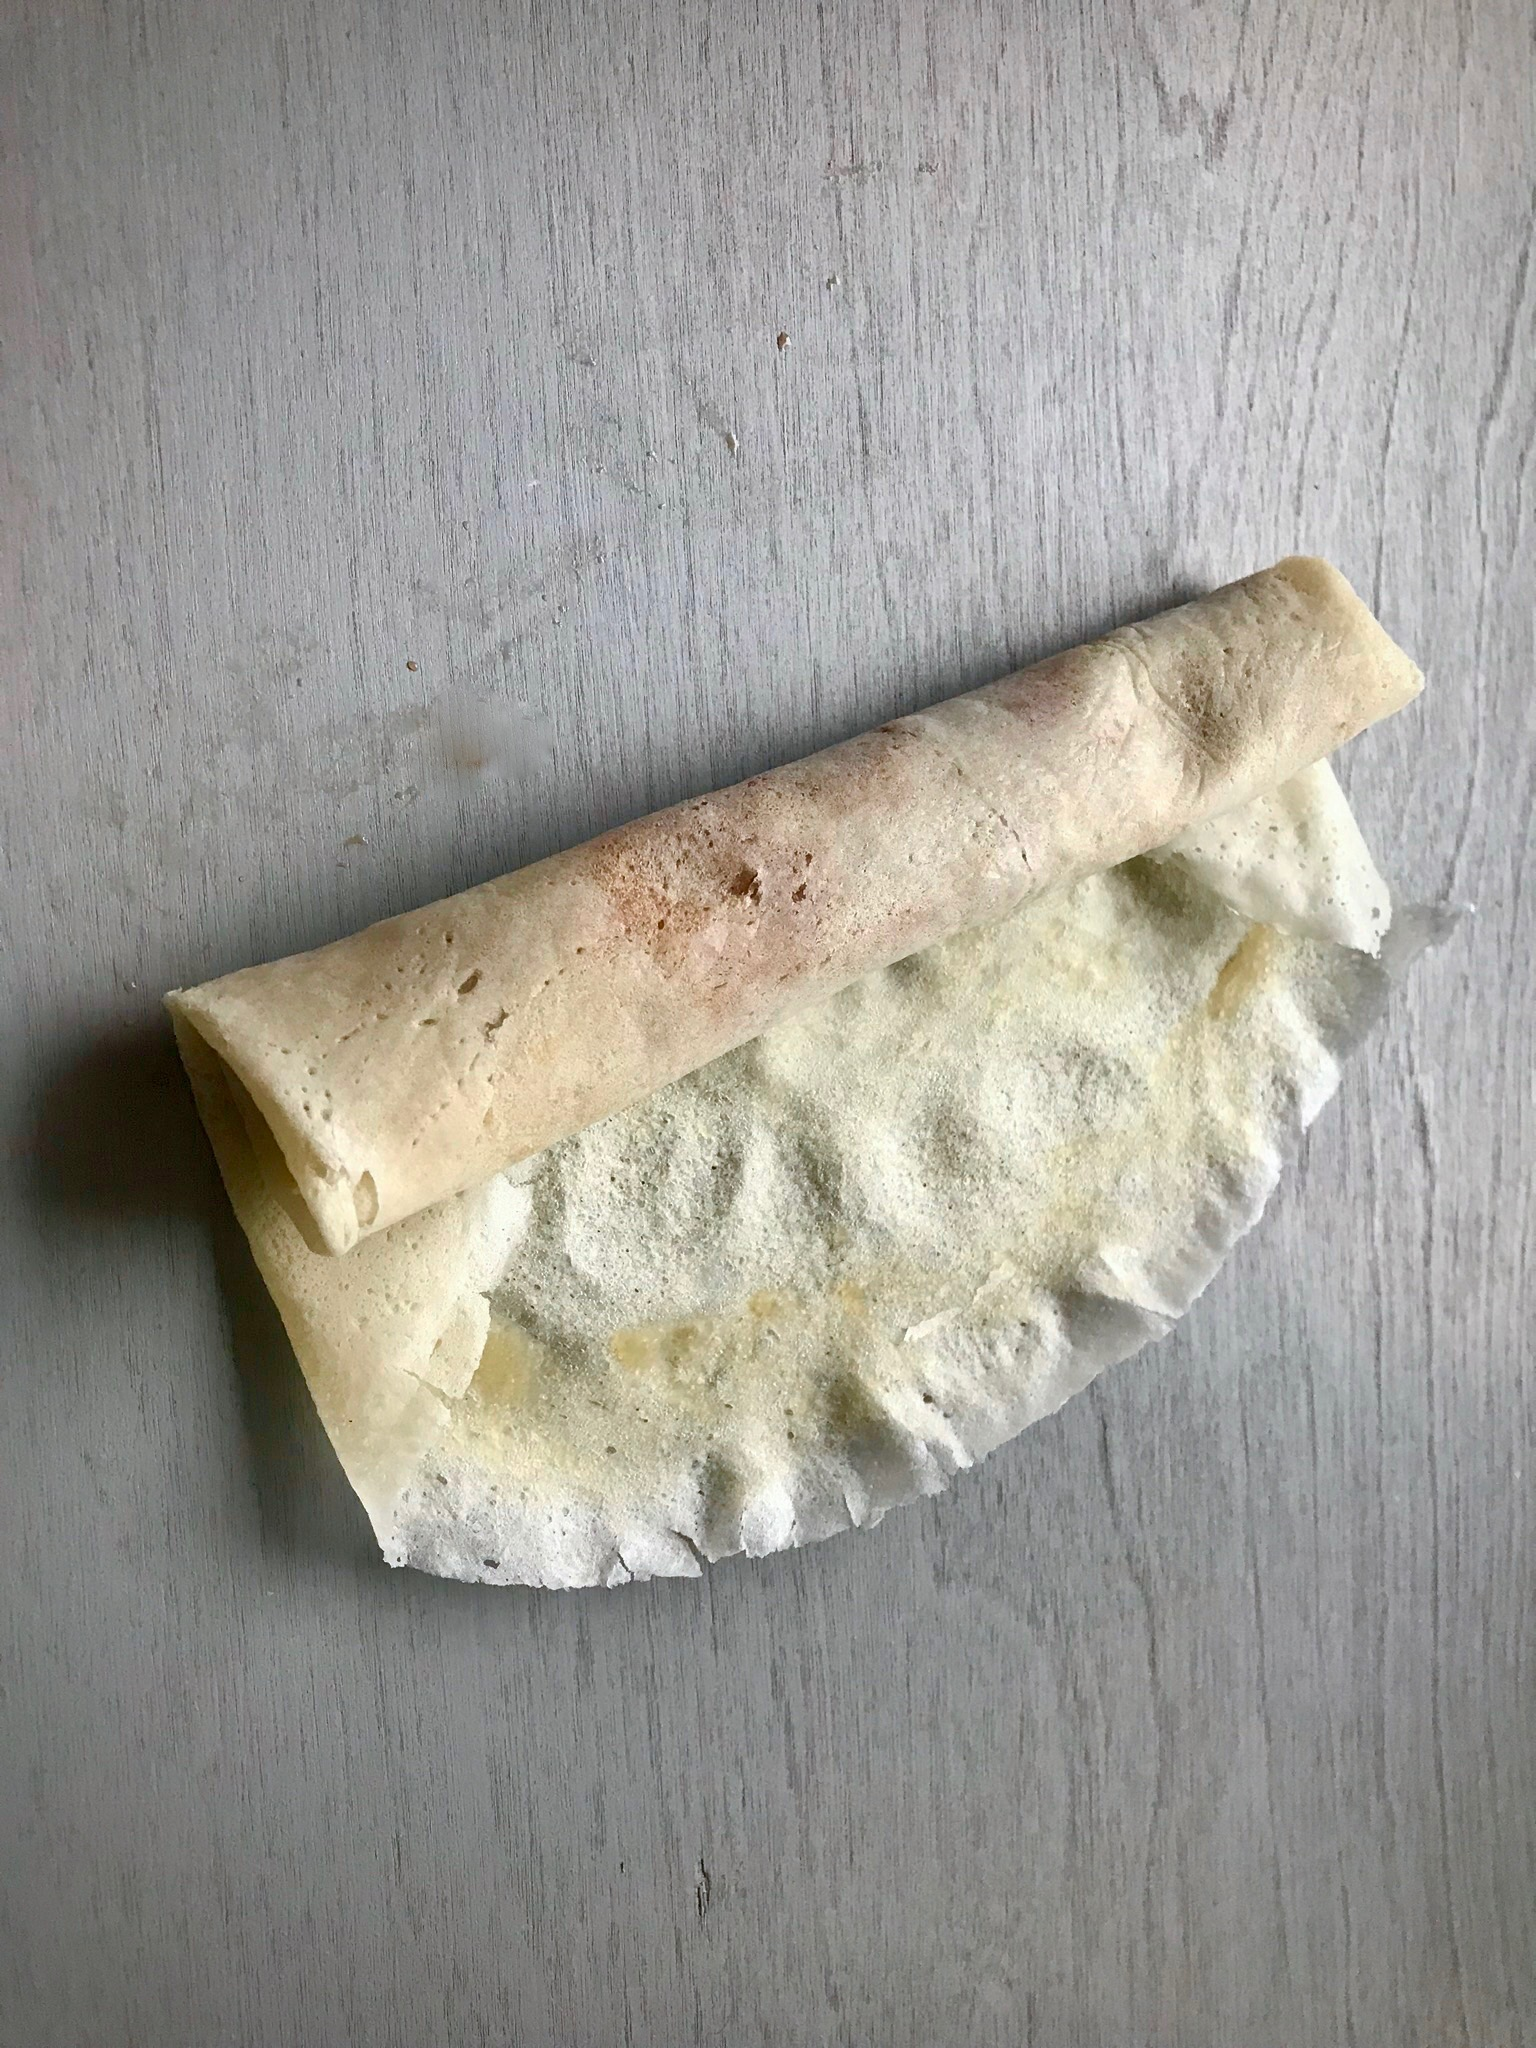 Finish rolling the lumpia and seal the closing edge with water